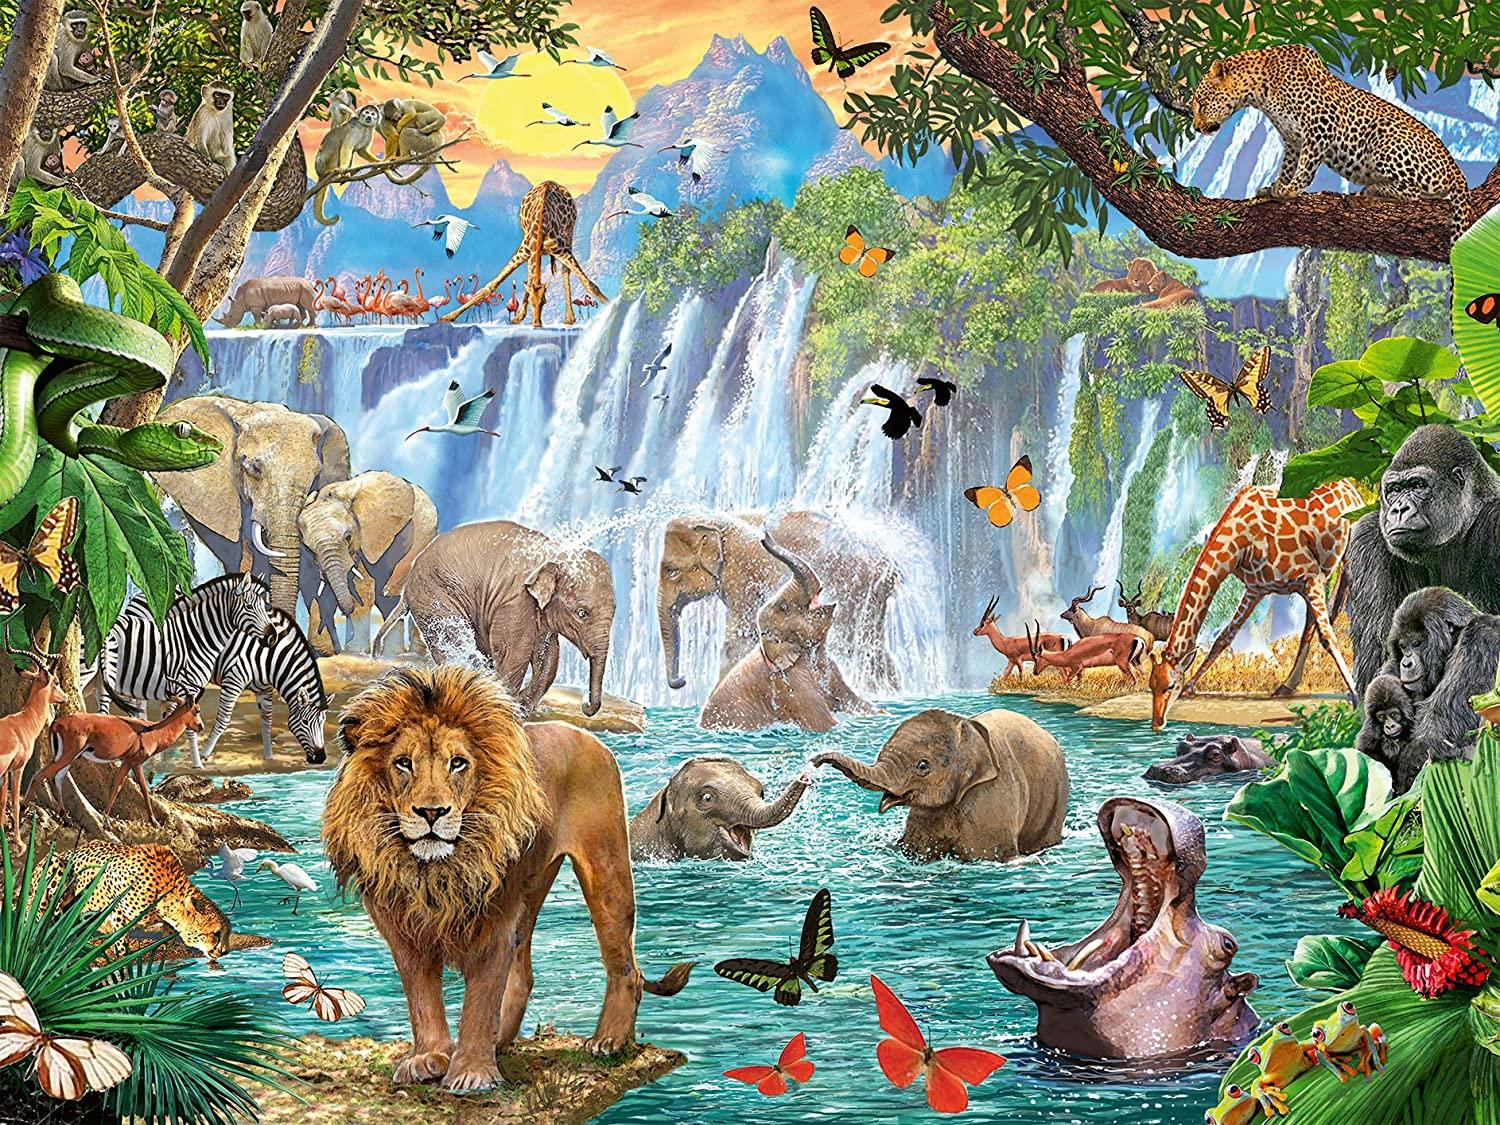 Ravensburger Waterfall Safari Jigsaw Puzzle (1500 Pieces)